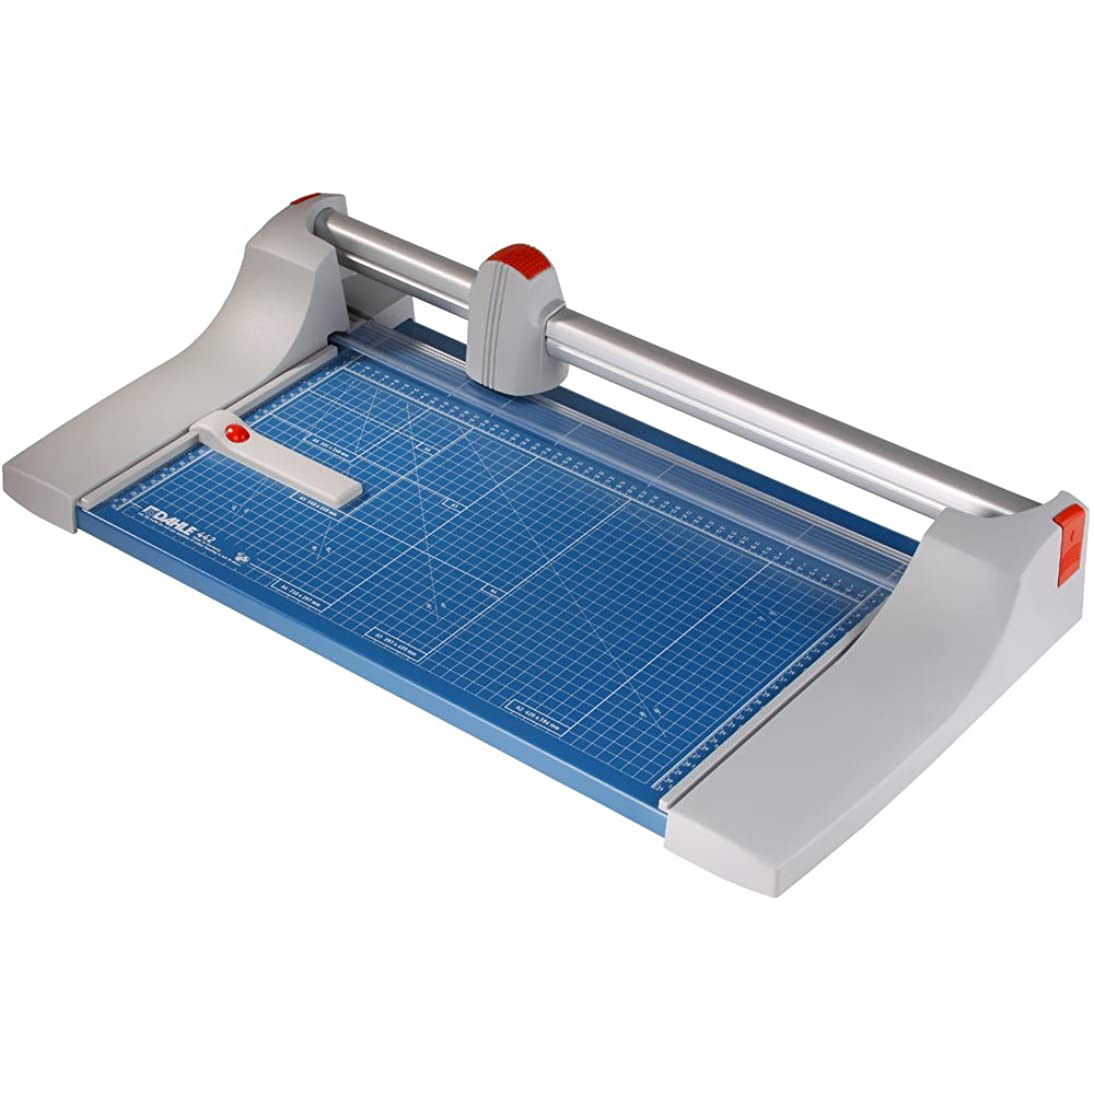 Dahle Guillotine Cutter to Roulette R000442?Professional A3